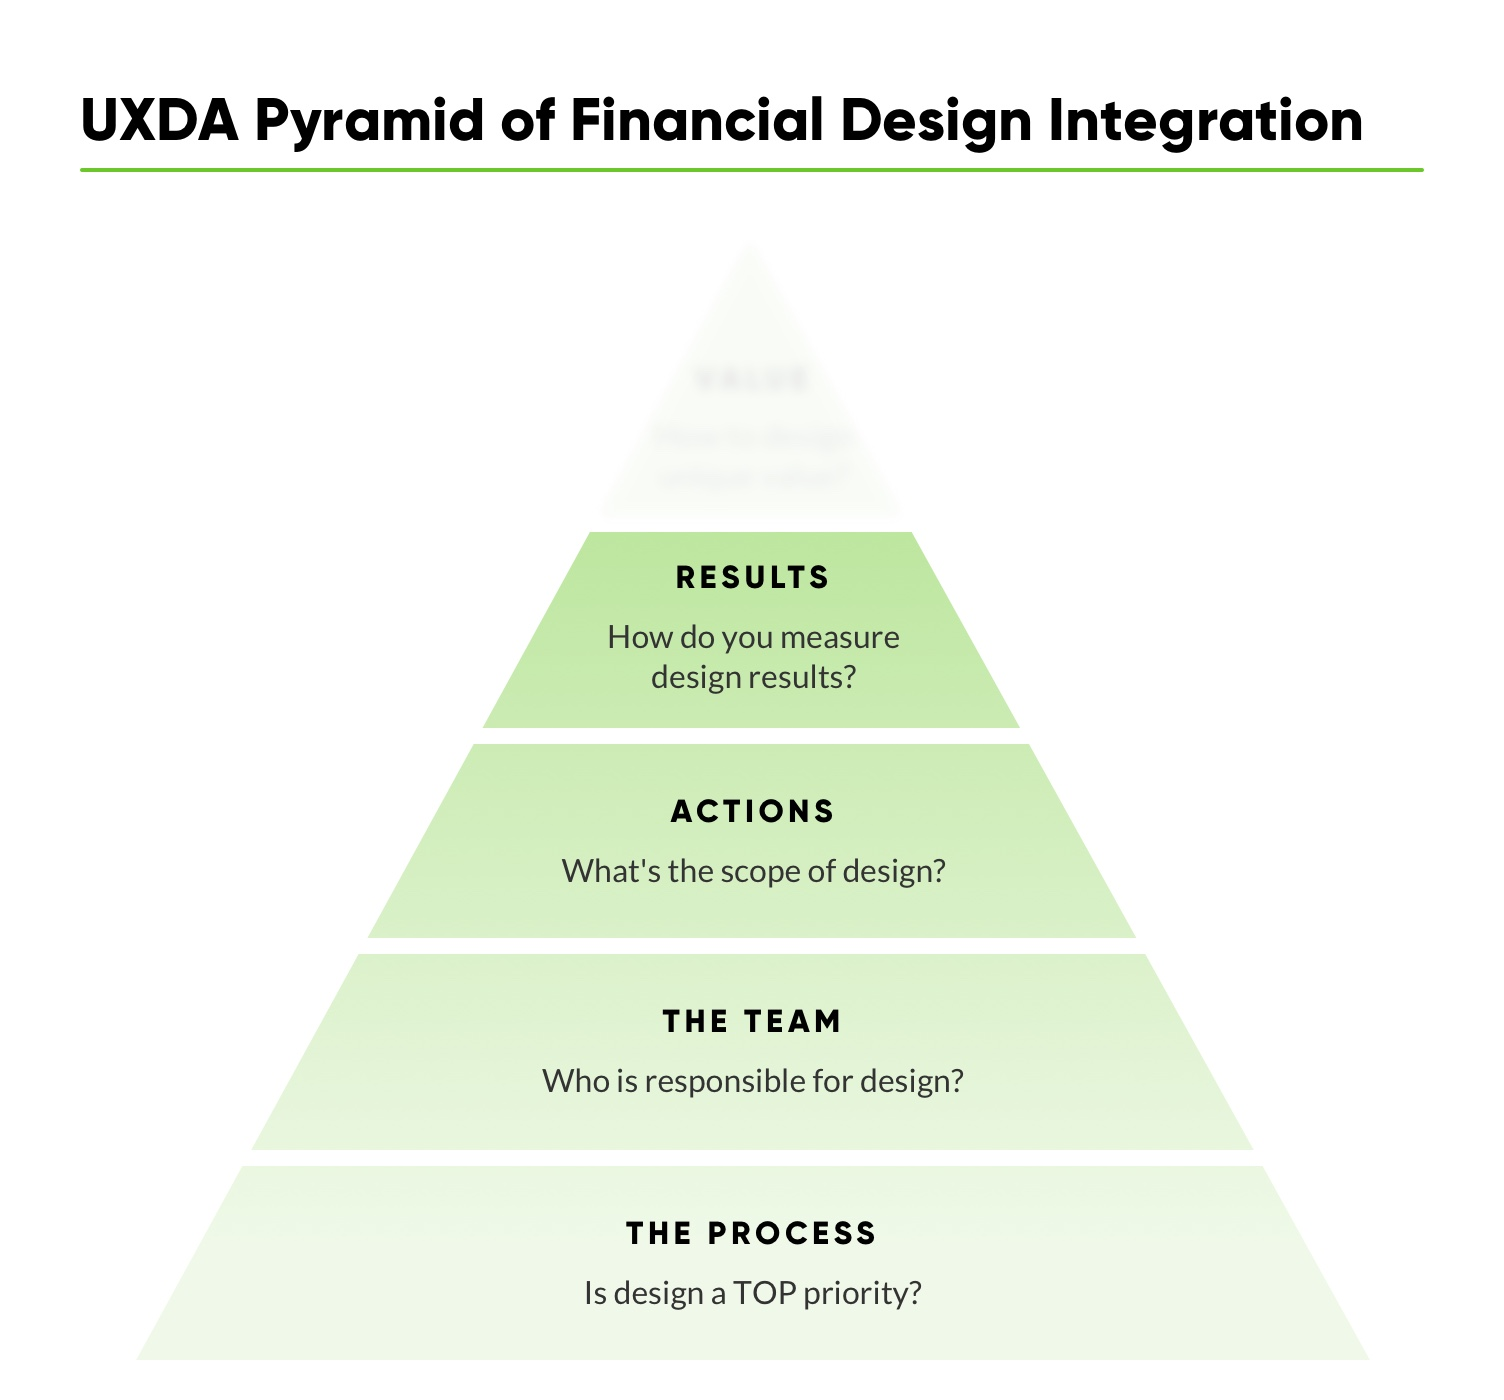 financial-ux-design-methodology-uxda-financial-design-integration-4-S.jpg